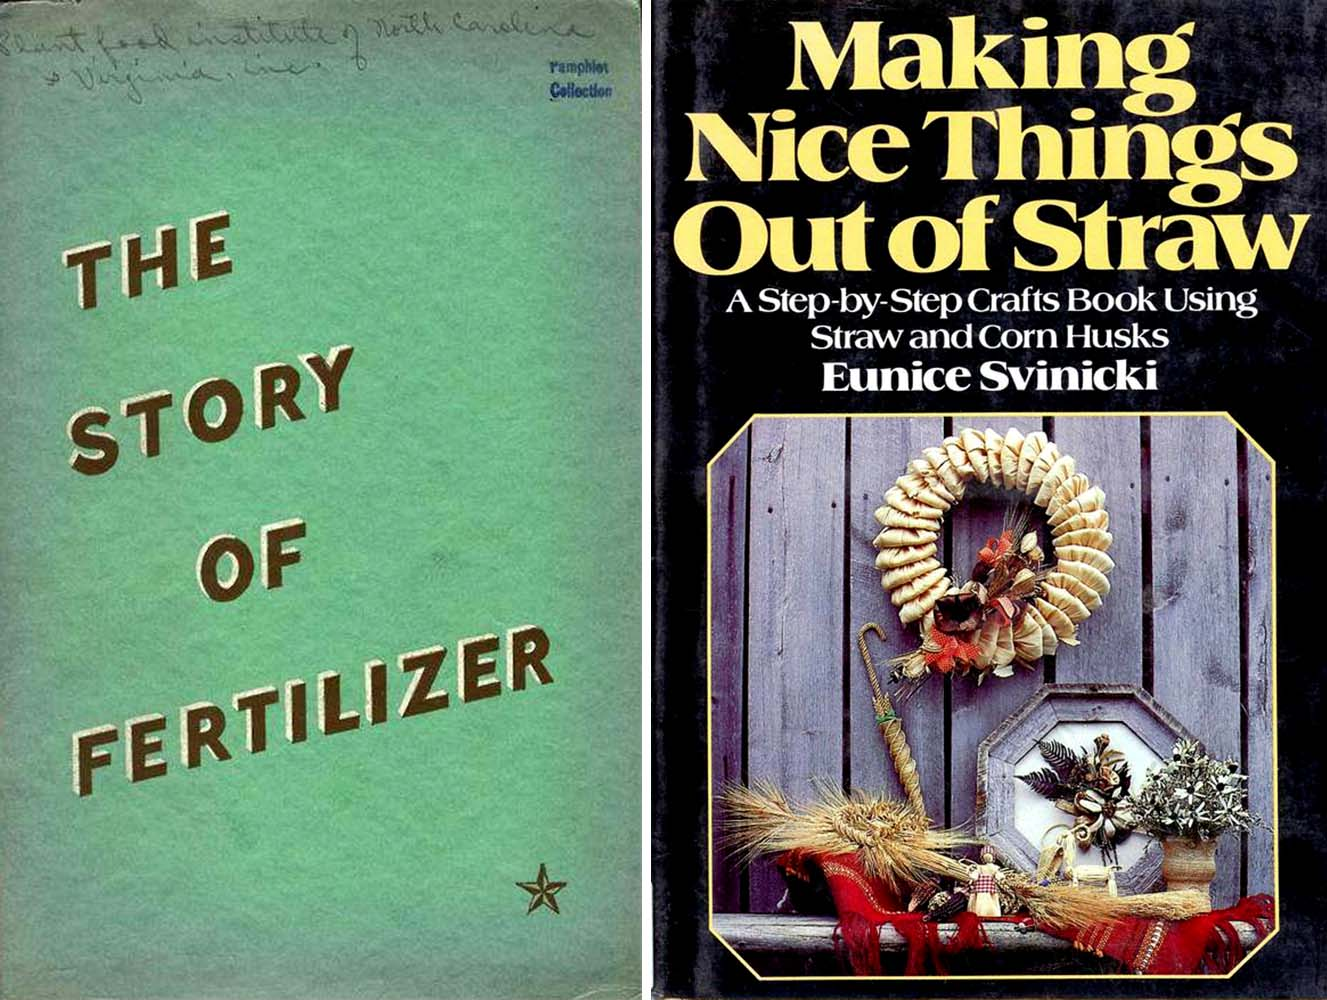 Vintage Bad Book Club From Hell The Story Of Fertilizer And Other Painfully